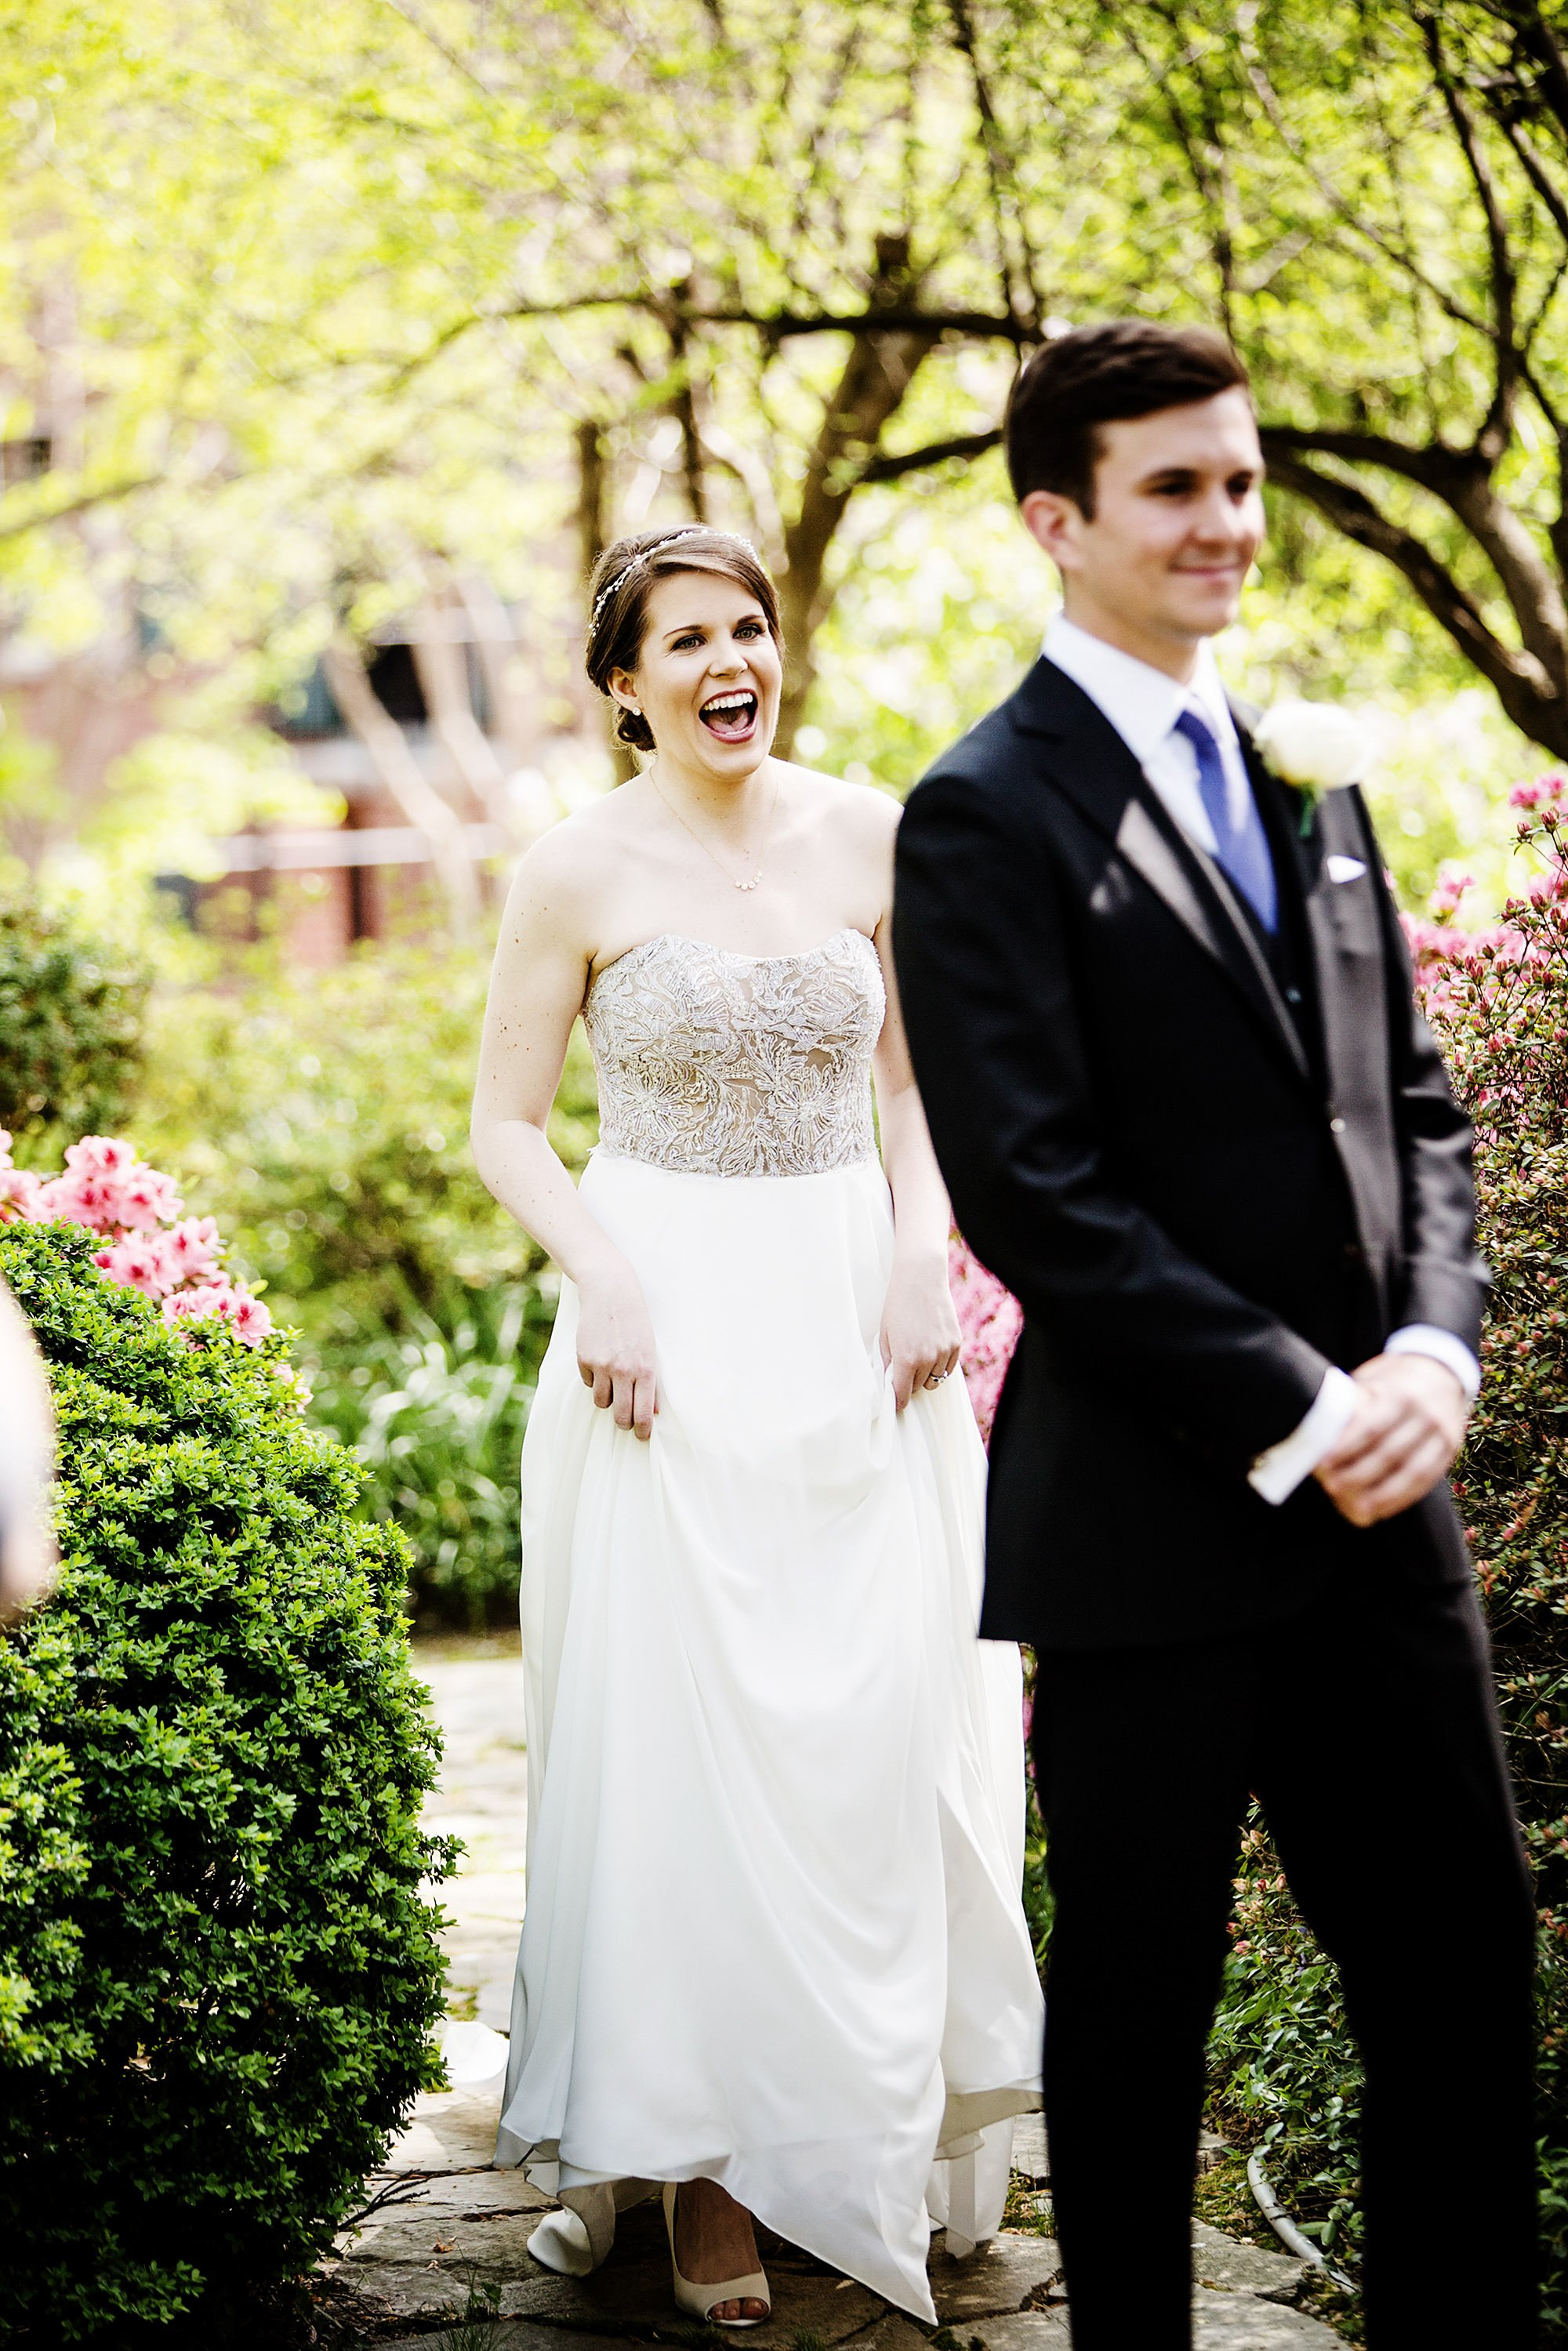 The bride and groom share their first look at Meridian House in Washington, DC